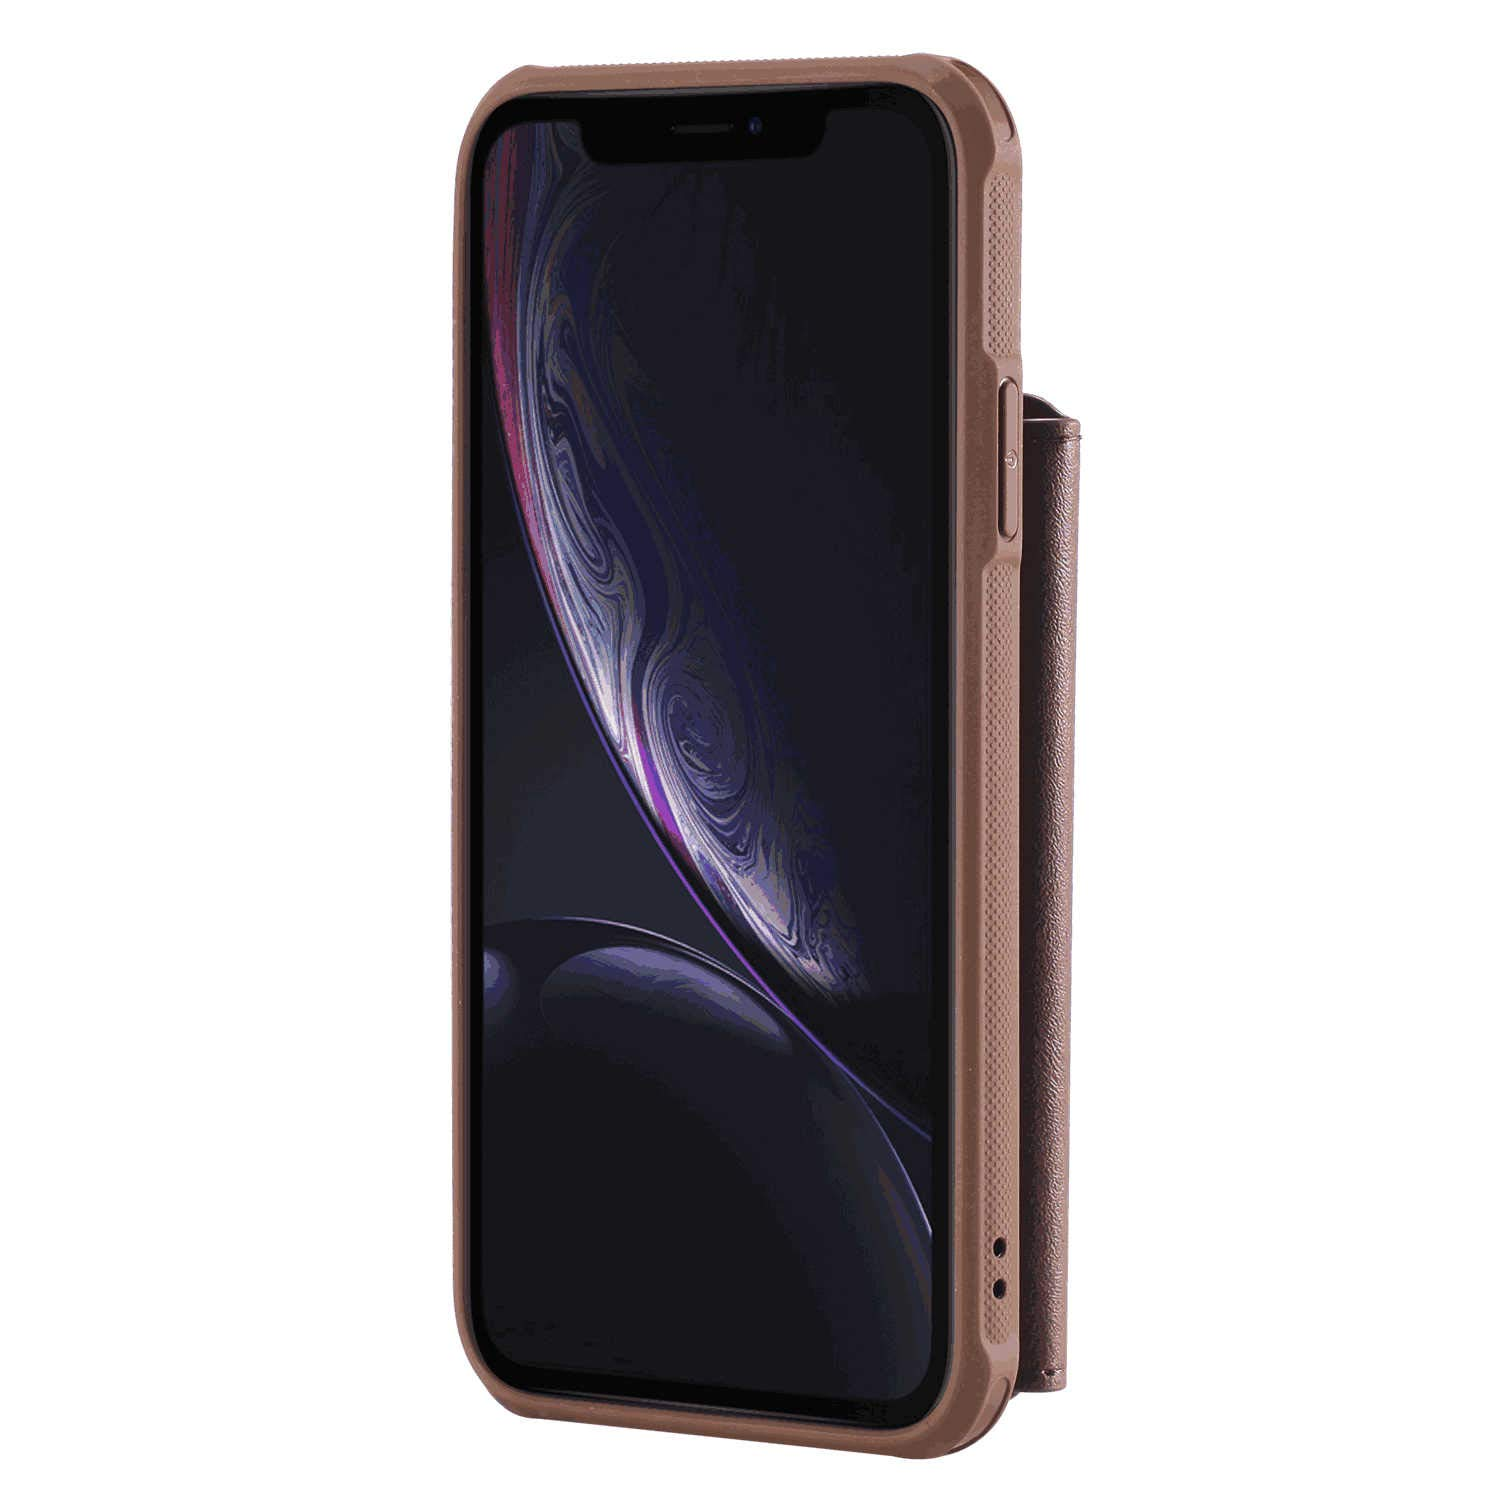 Cover for Samsung Galaxy S10 Plus Leather Cell Phone Cover Kickstand Extra-Protective Business Card Holders with Free Waterproof-Bag Samsung Galaxy S10 Plus Flip Case